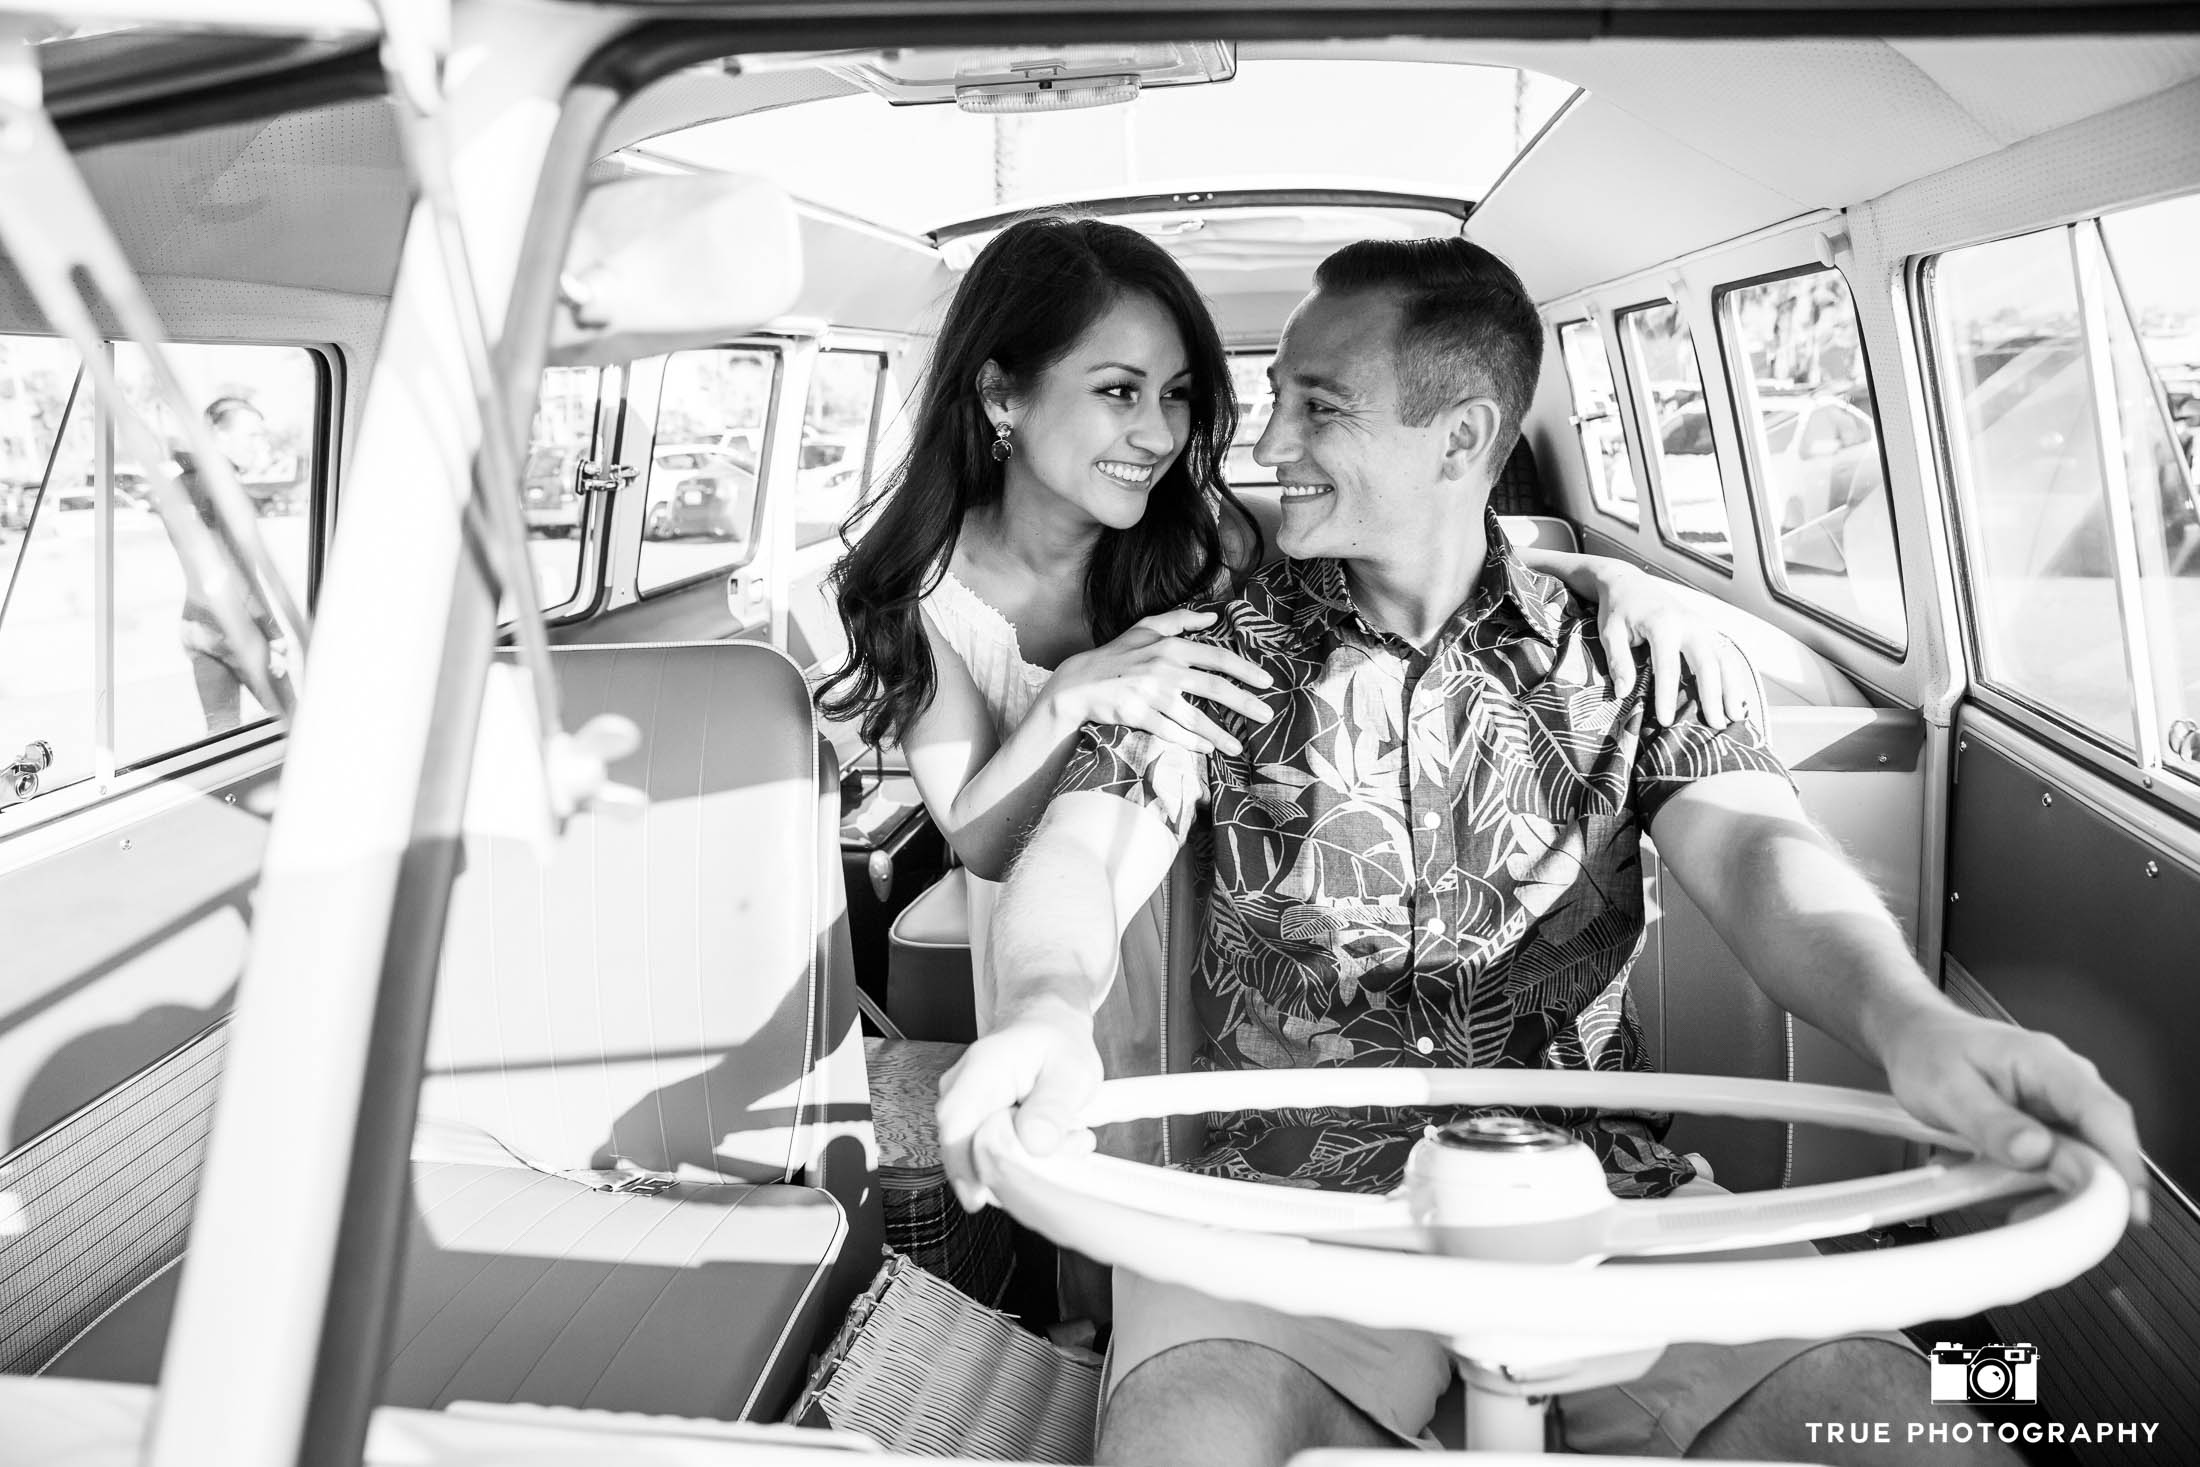 Groom-to-be drives Volkswagen bus as Bride-to-be sits behind him